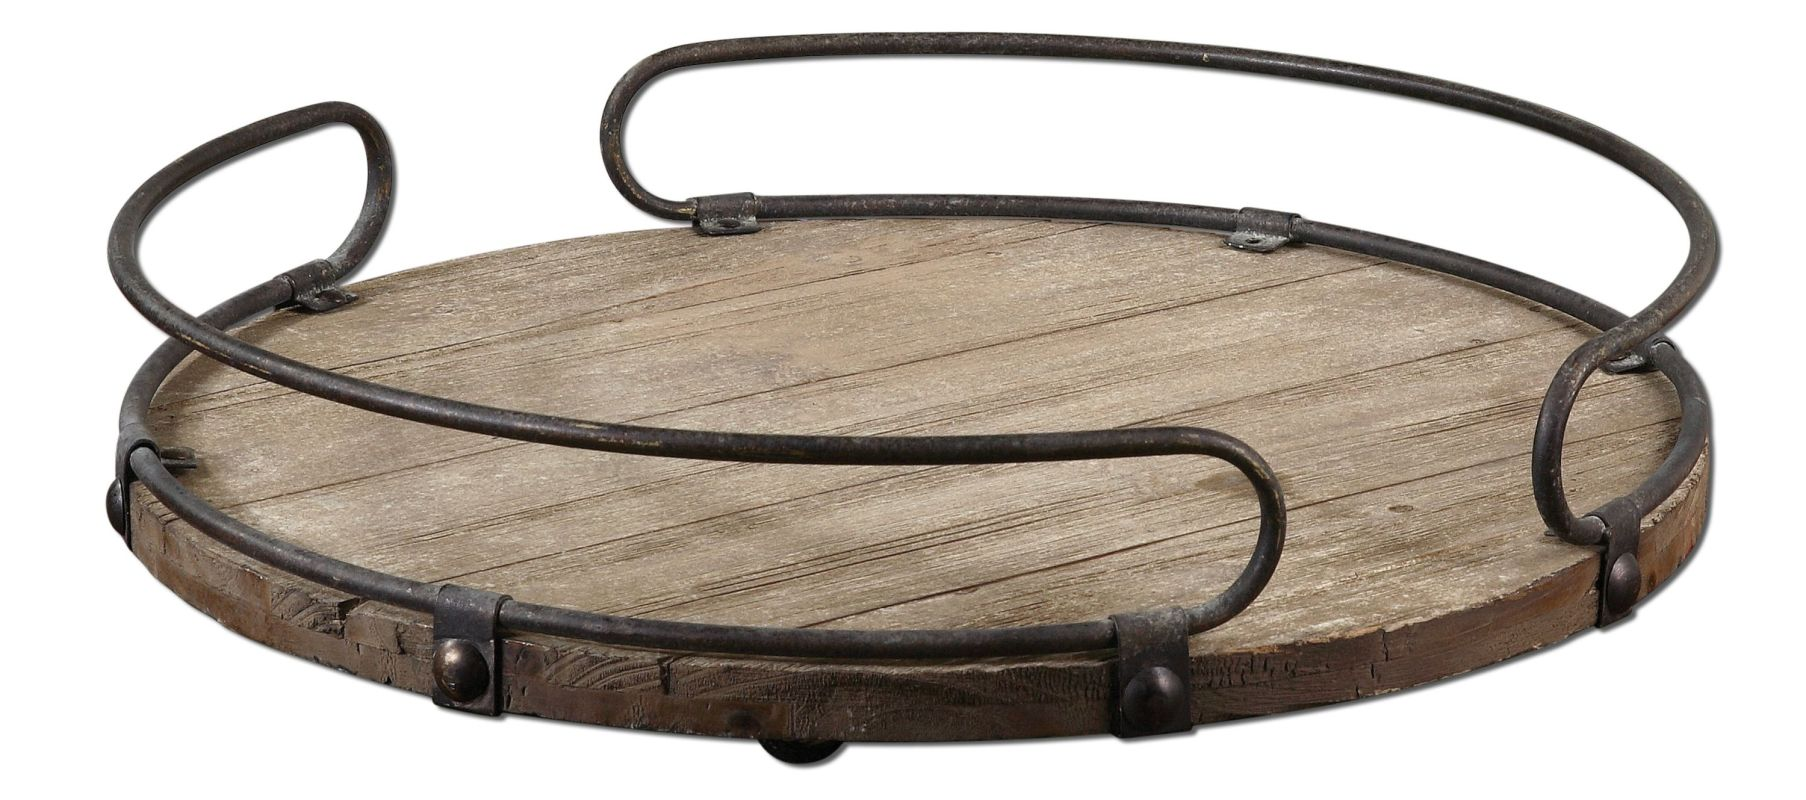 Uttermost 19727 Acela Tray Natural Wood Home Decor Decorative Trays